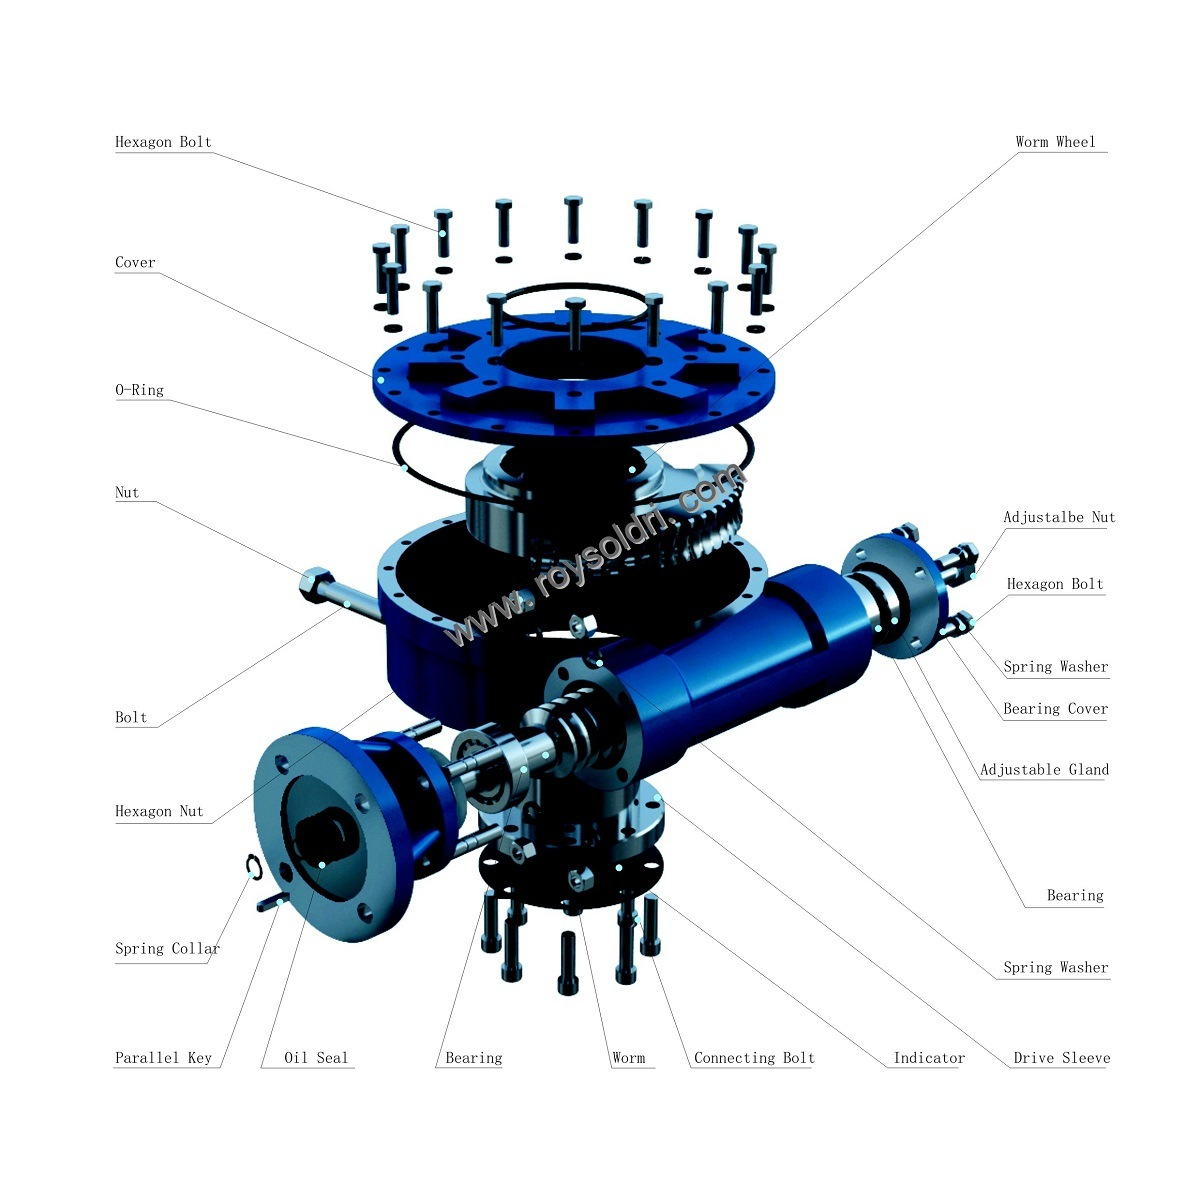 Part-Turn Valve Worm Gearbox